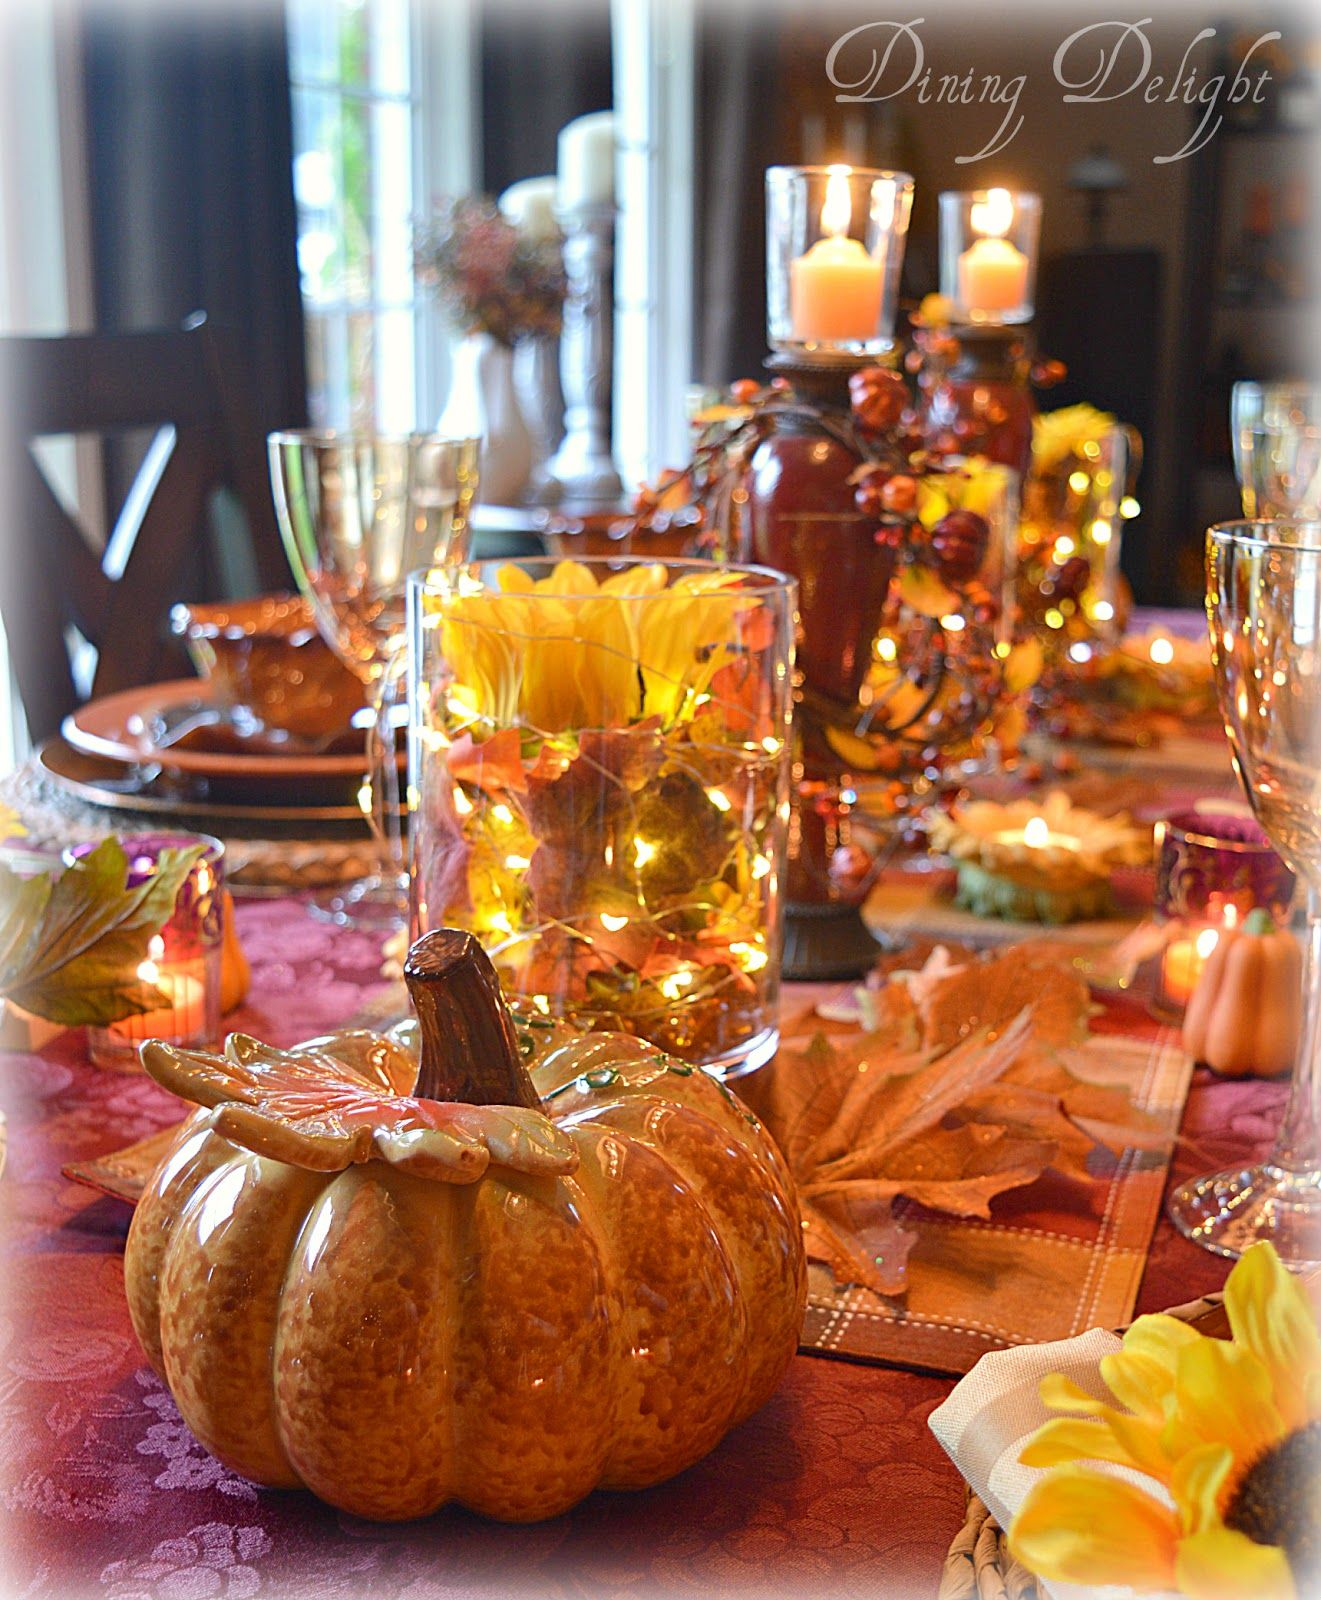 Last weekend, we celebrated Thanksgiving with a special ...